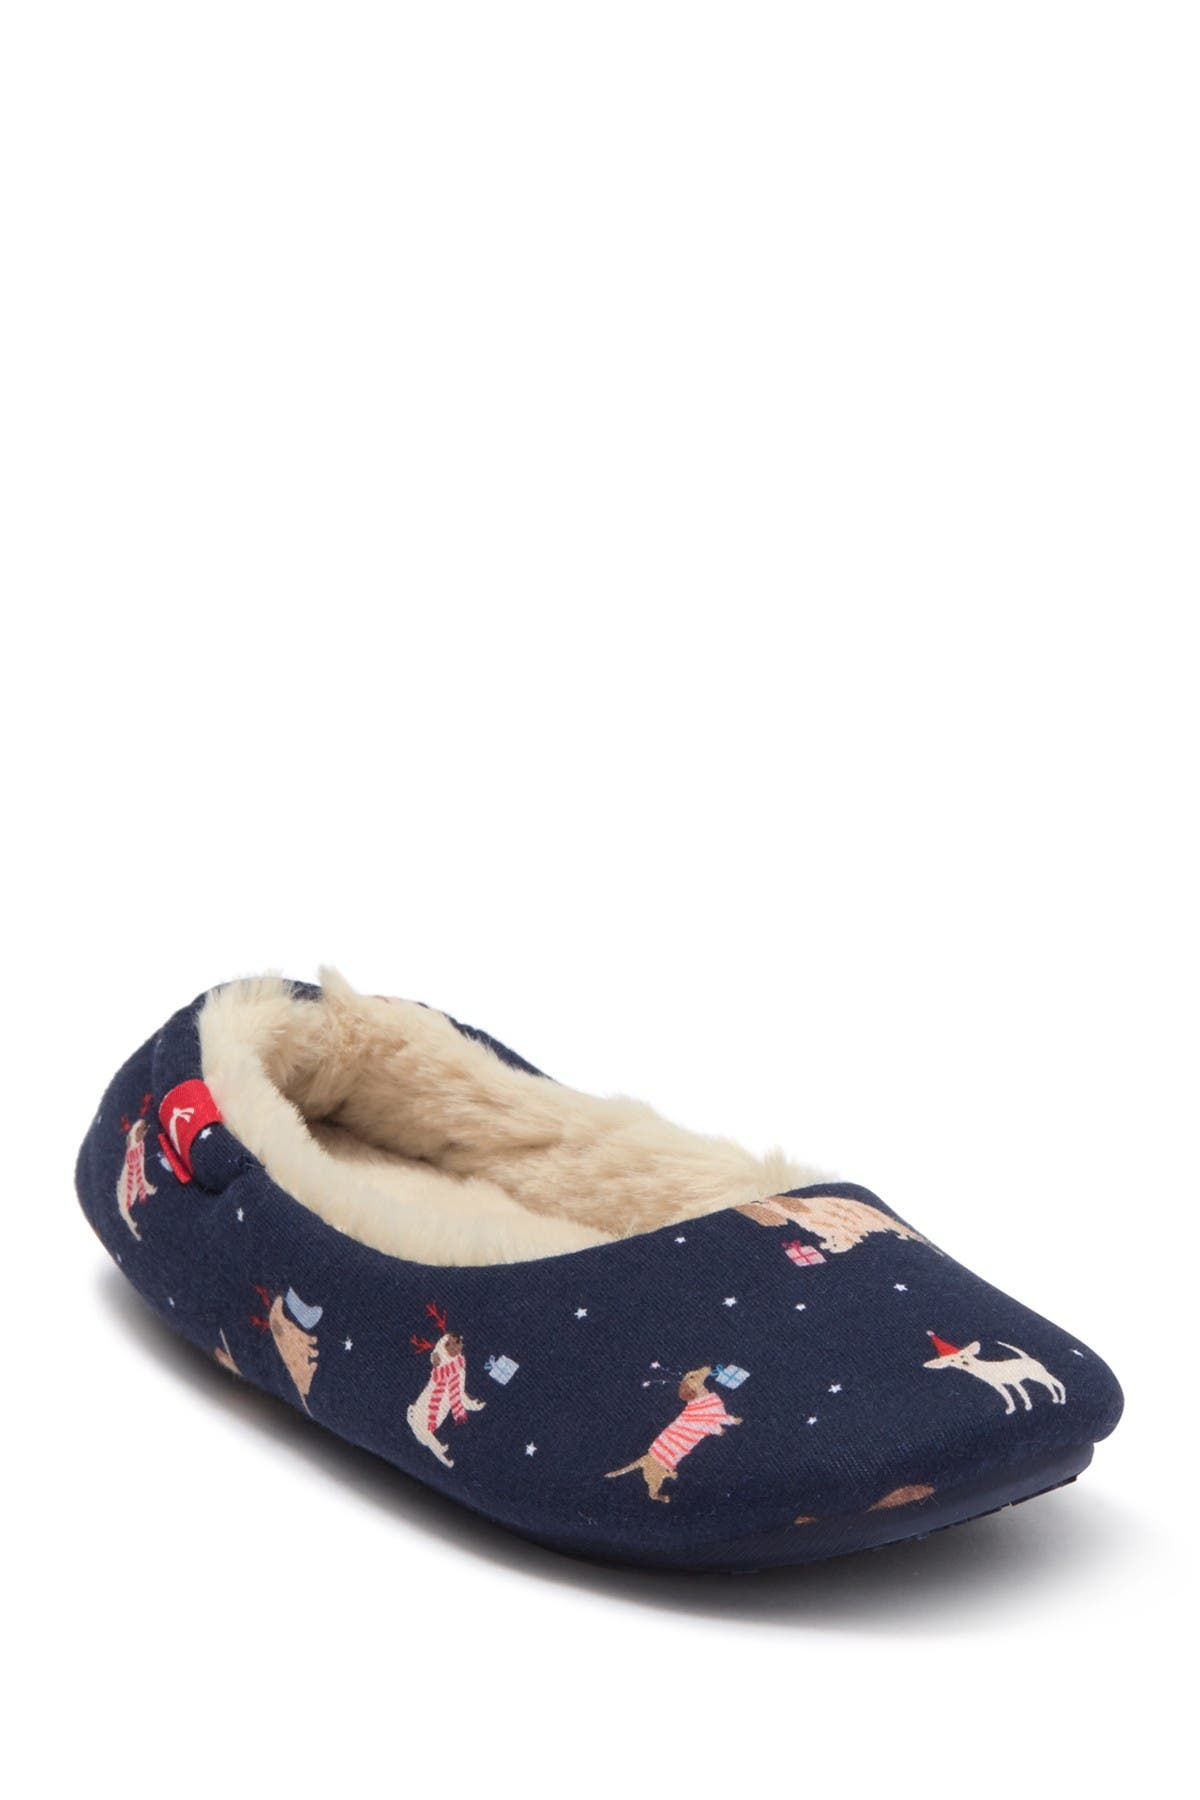 Image of Joules Dream Well Faux Fur Slippers